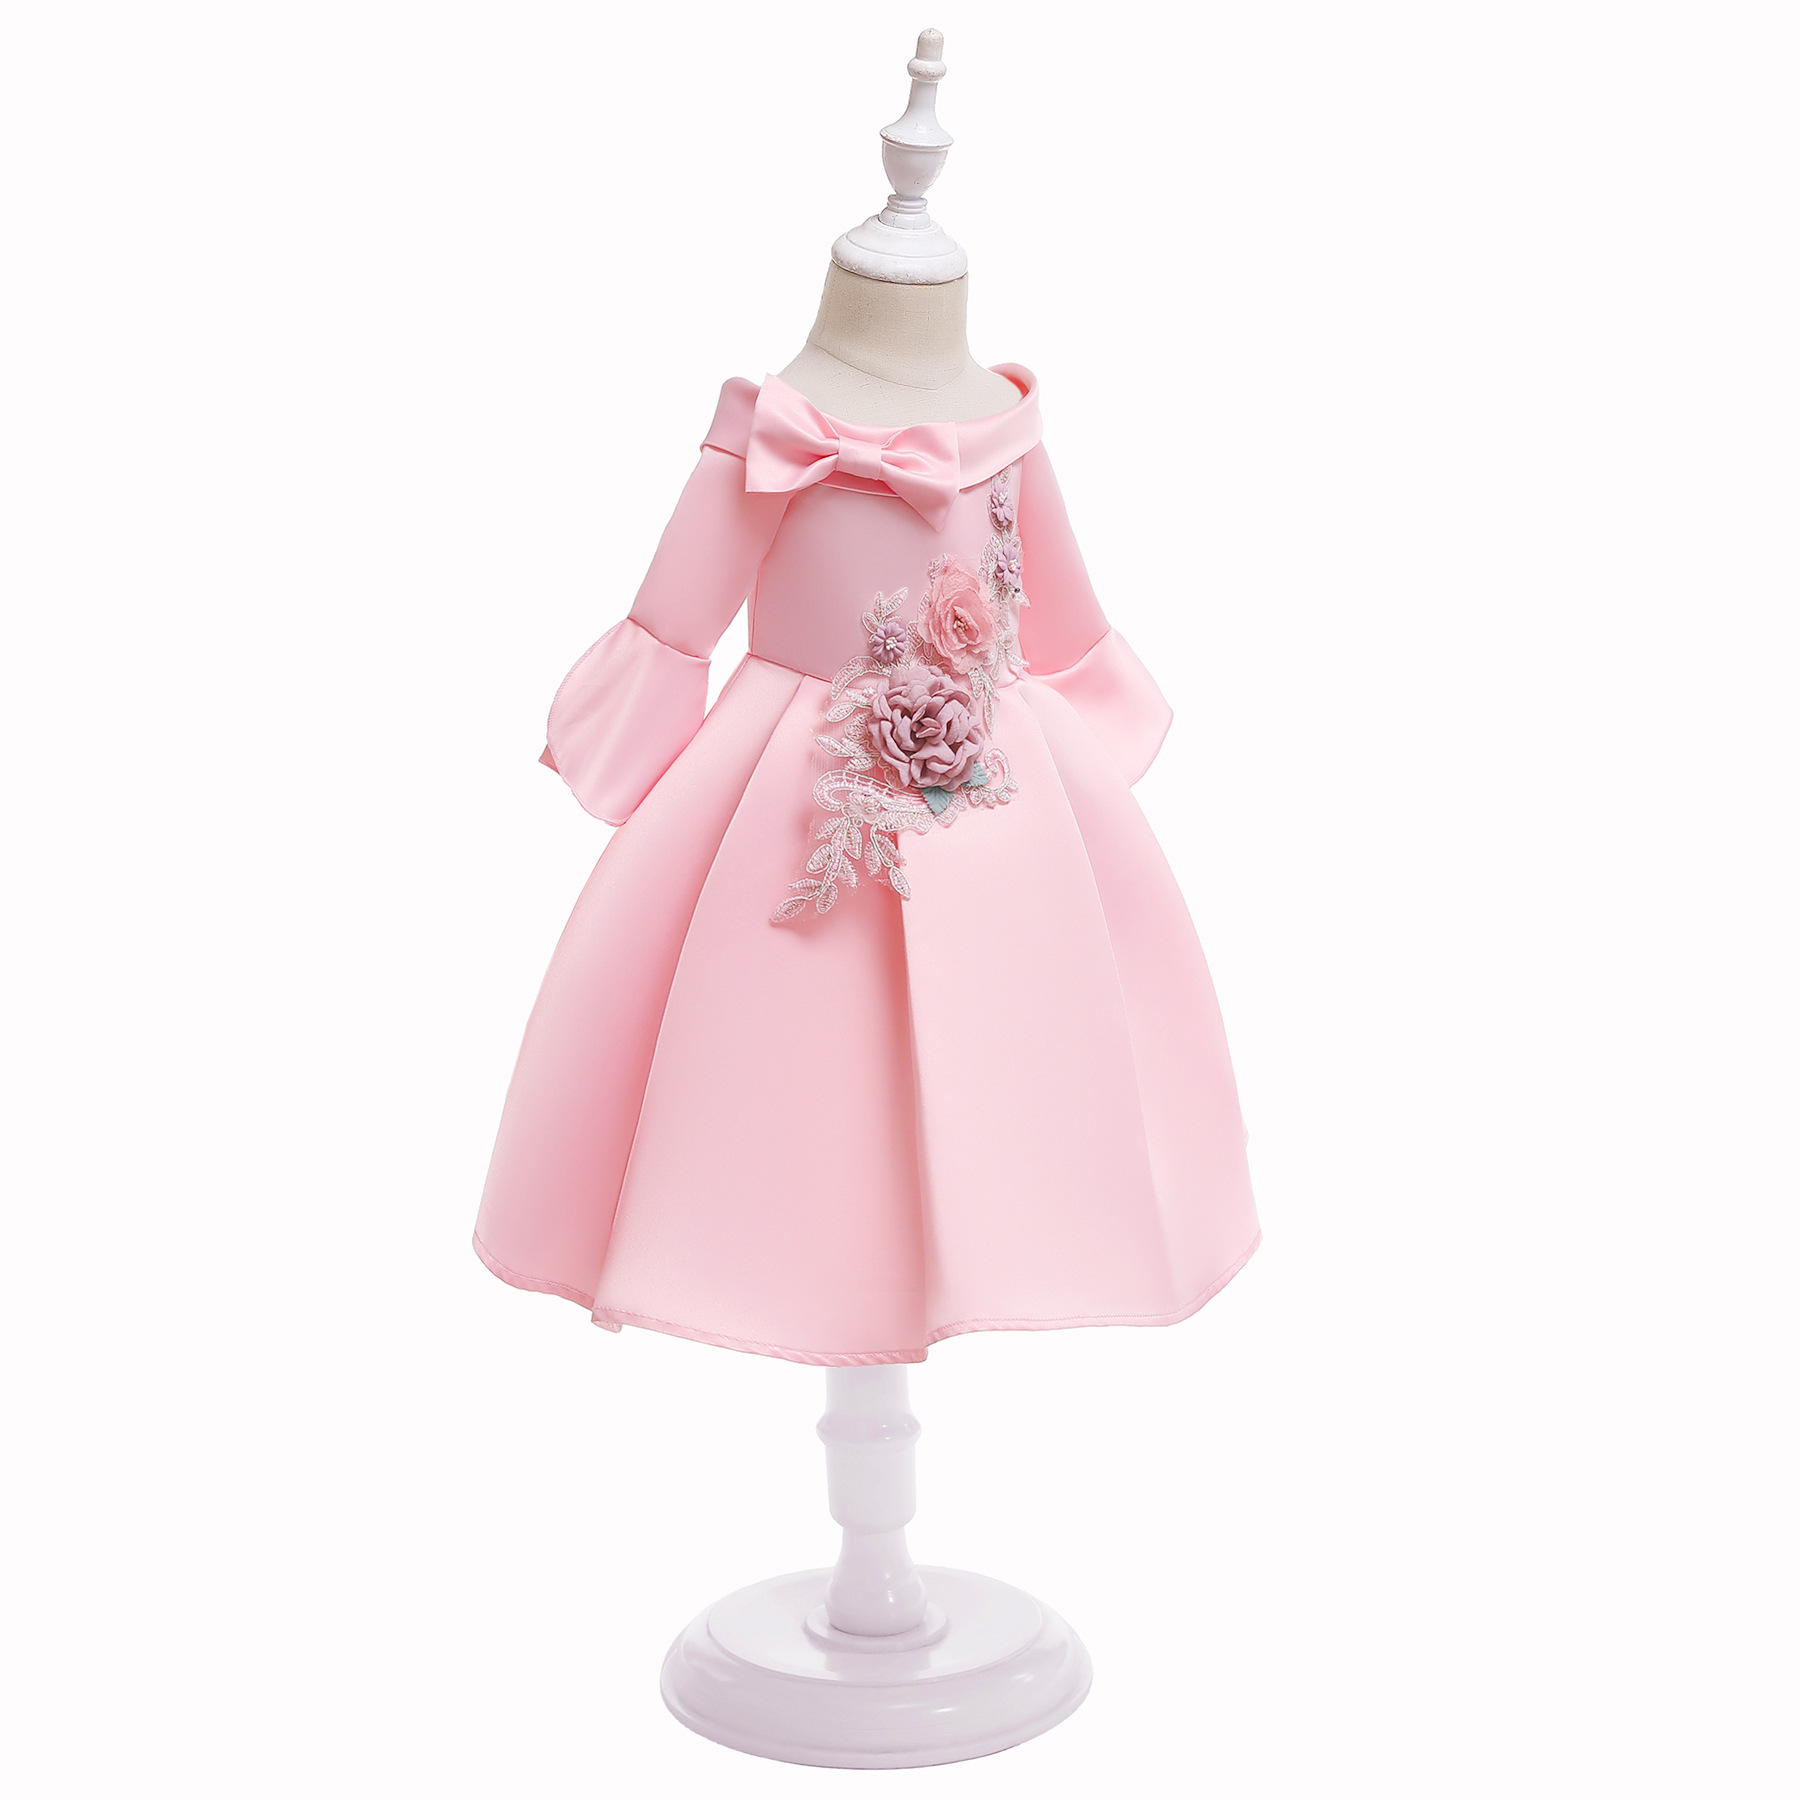 2019 Summer Kids Dress for Girls Toddler Girls Princess Dress for Party Wedding Ball Gown Children Girls Costume Clothing in Dresses from Mother Kids